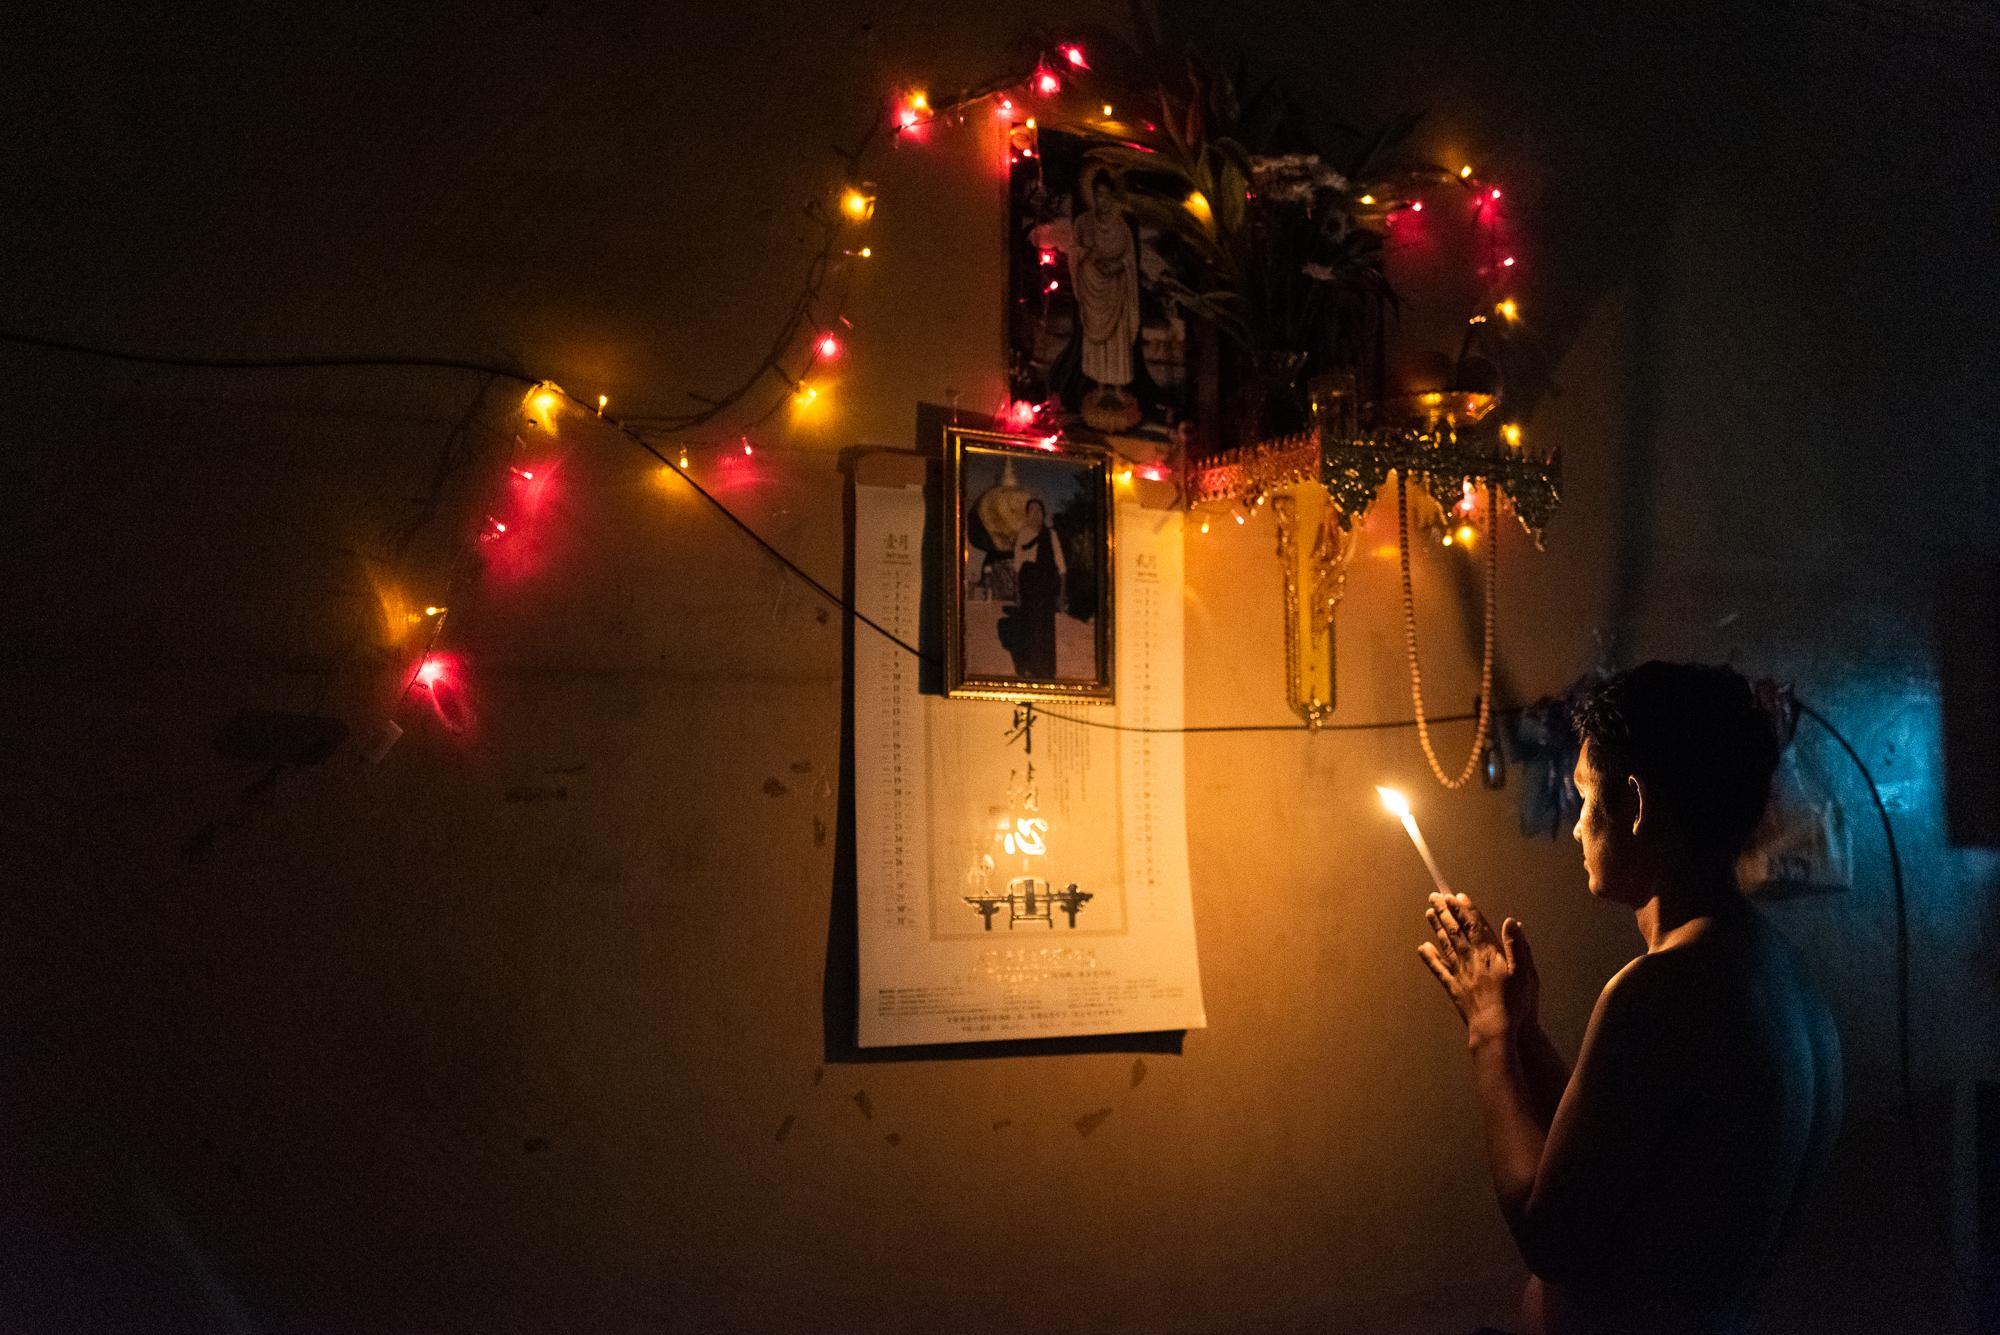 BANGKOK, THAILAND – NOVEMBER 30, 2018: Aung Myo Thun, a Burmese worker from a village near Naypyitaw, Myanmar, praying in his apartment in Yaowarat, Bangkok's Chinatown. Under the Buddha's portrait is a photo of his old mother, who still lives in his hometown. He is one of Burmese workers who came to work in Thailand with hopes for a better future.